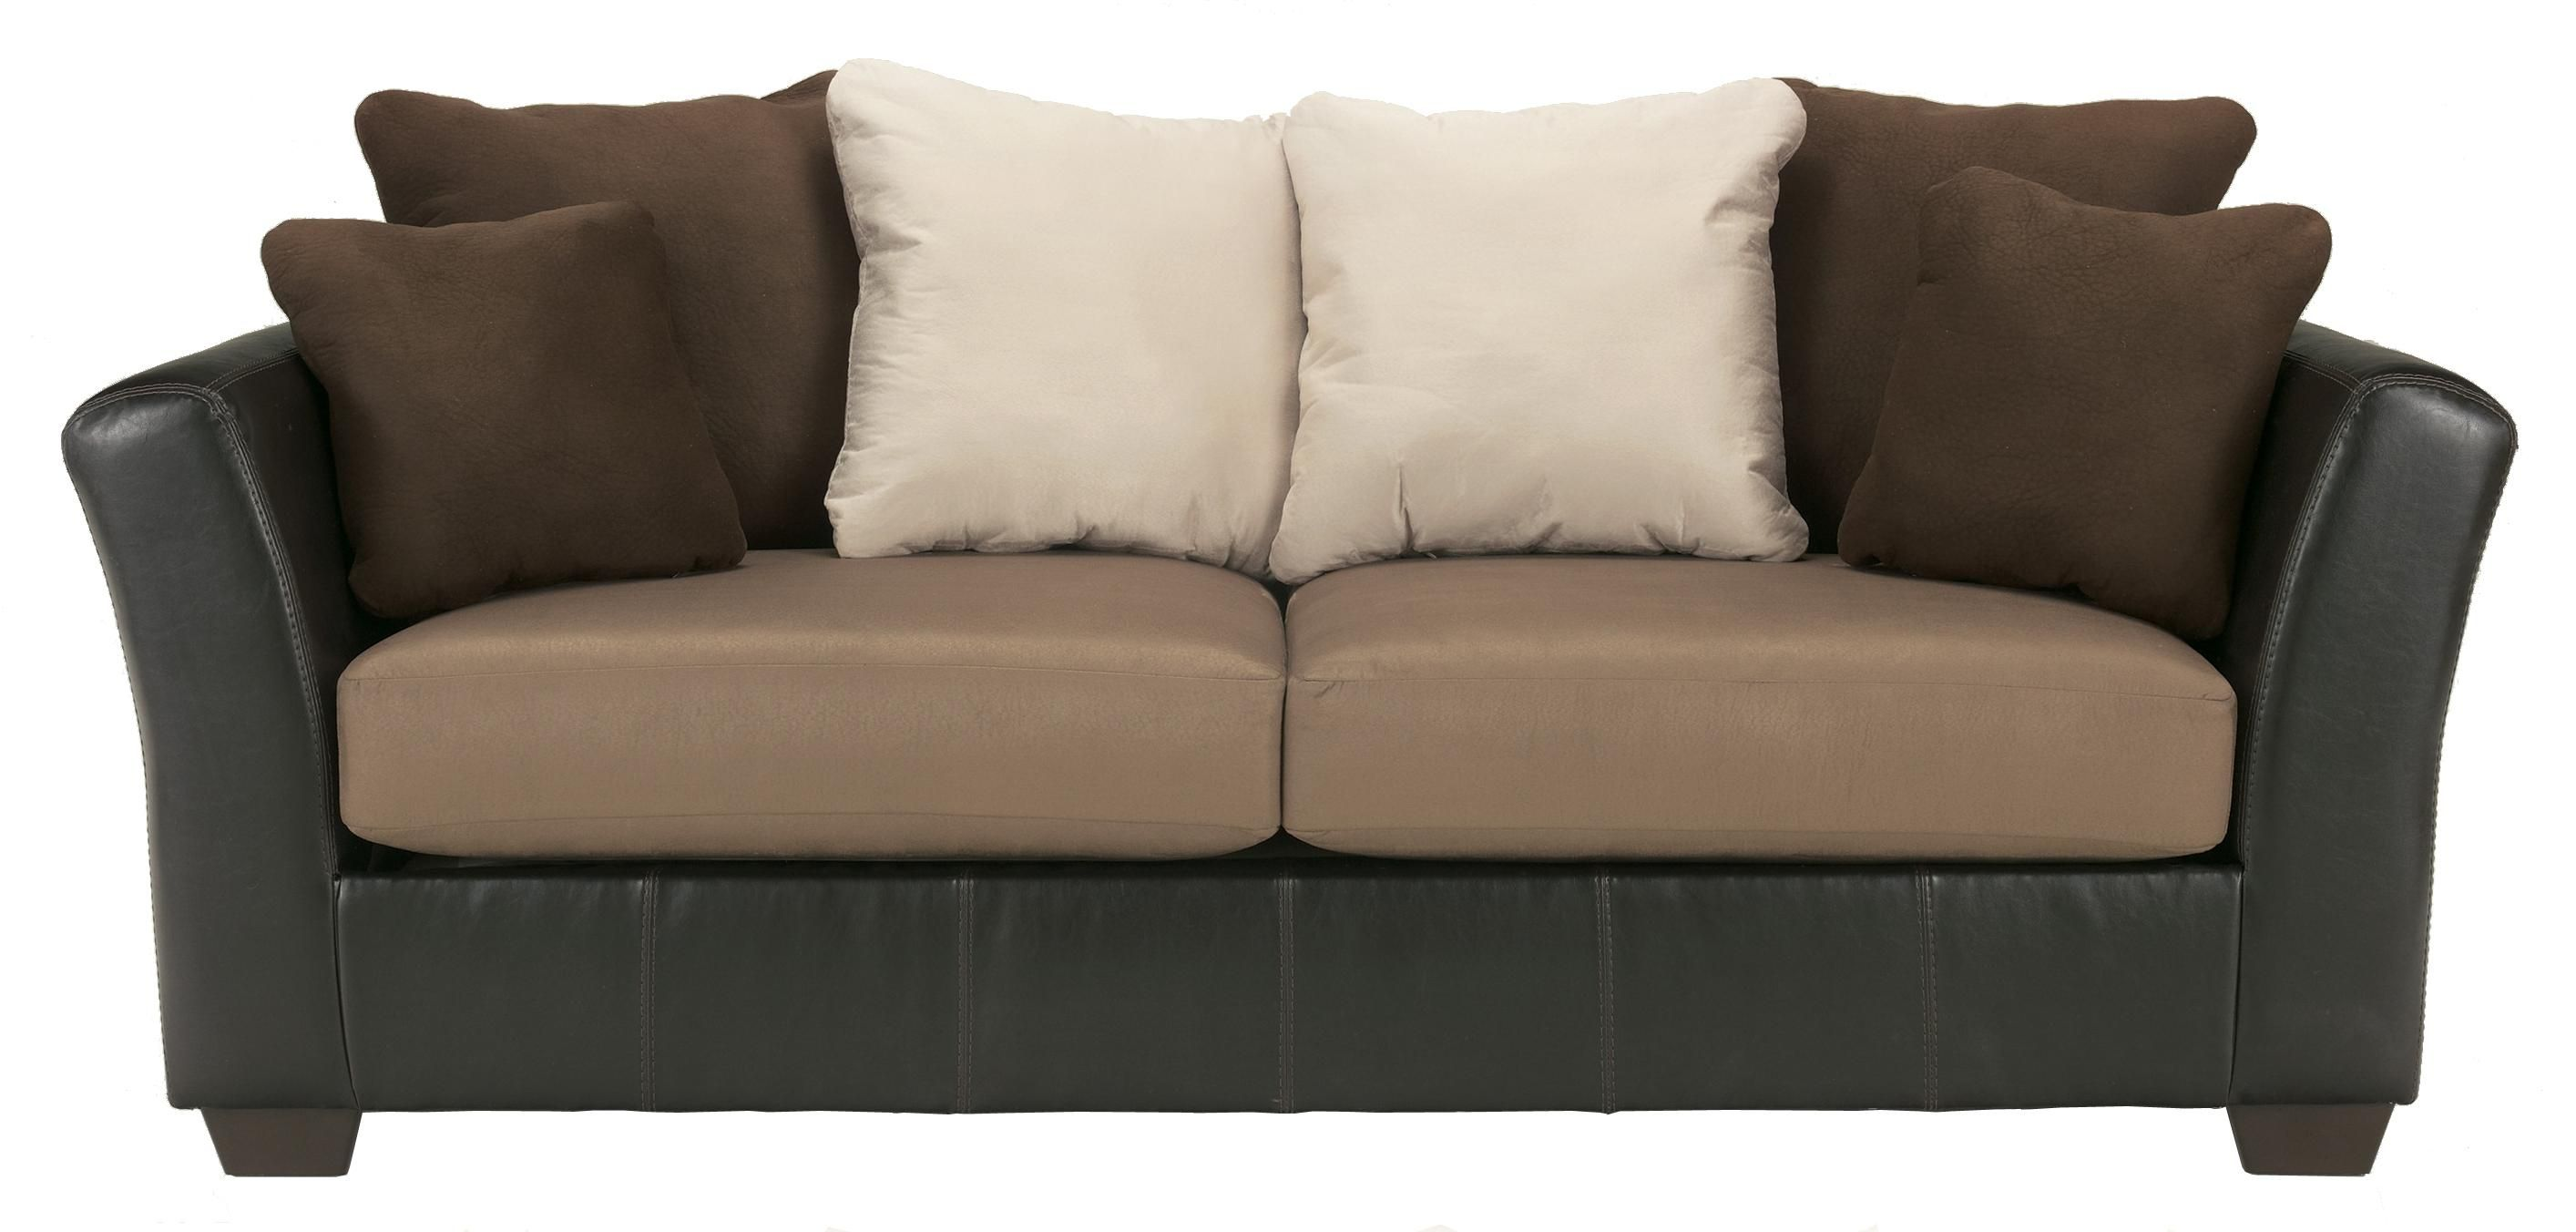 Best Masoli Mocha Faux Leather Fabric Sofa With Loose Back Pillows By Benchcraft Michael S 640 x 480